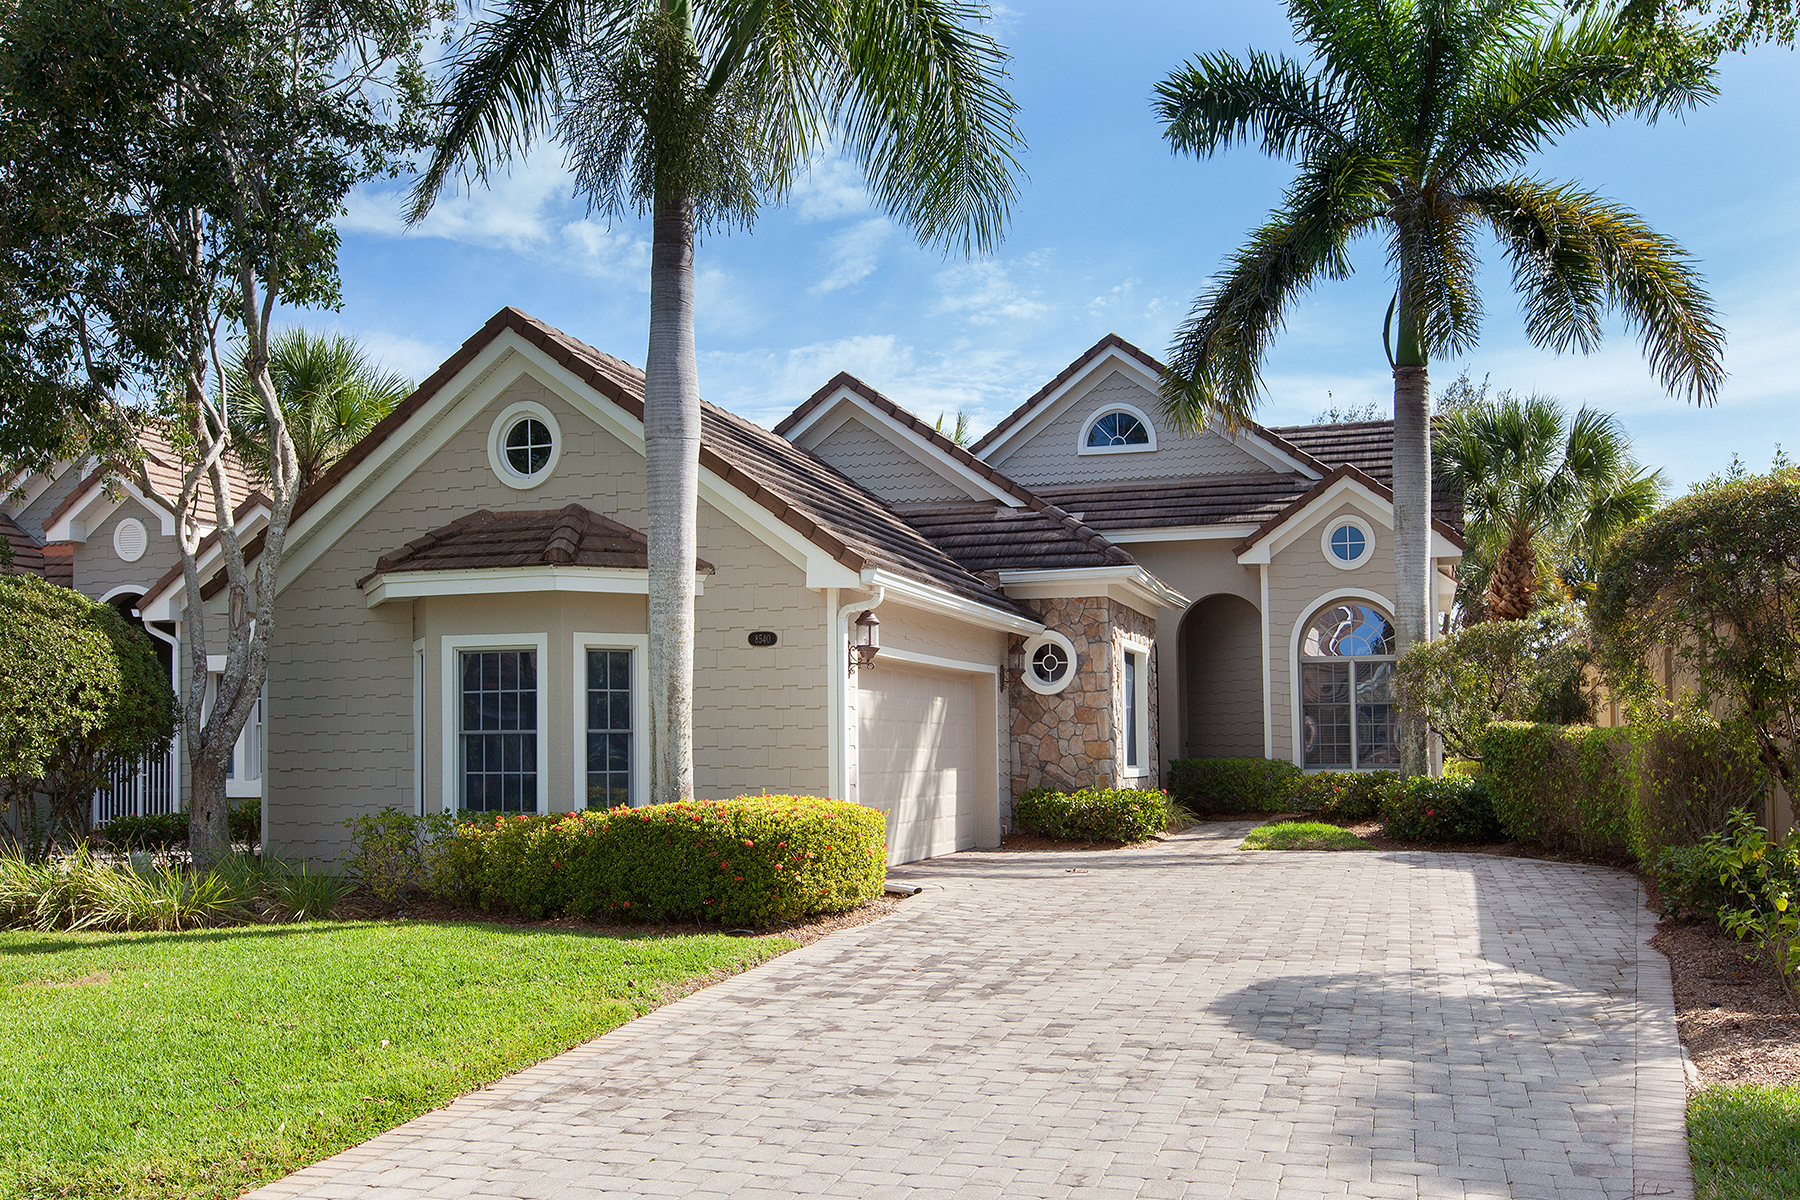 Single Family Home for Sale at FIDDLERS CREEK 8540 Mallards Way, Naples, Florida 34114 United States